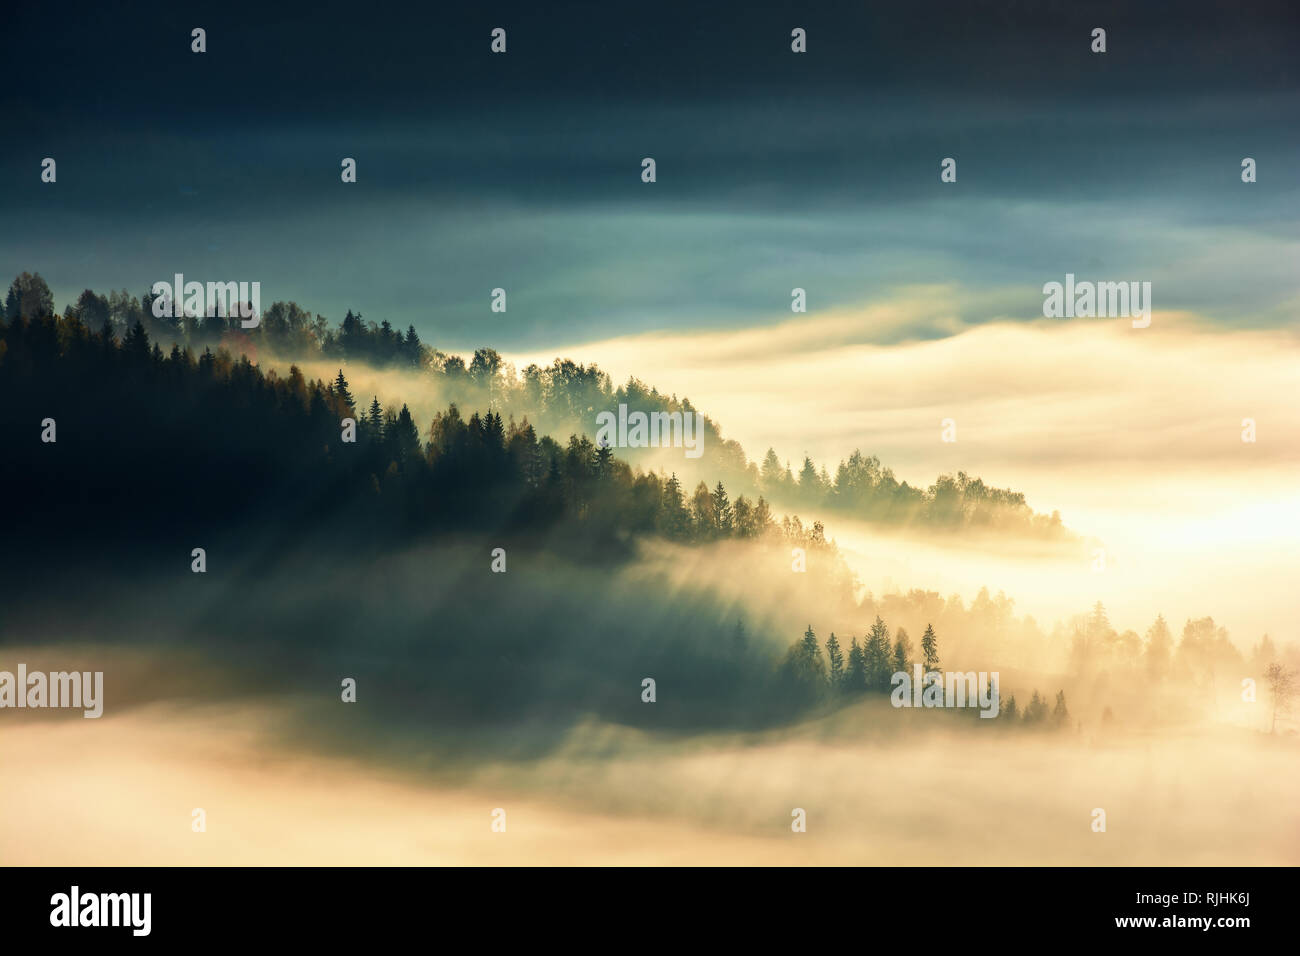 forest island on the hill in the sea of fog. view from the top. gorgeous scenery at sunrise. wonderful nature background - Stock Image